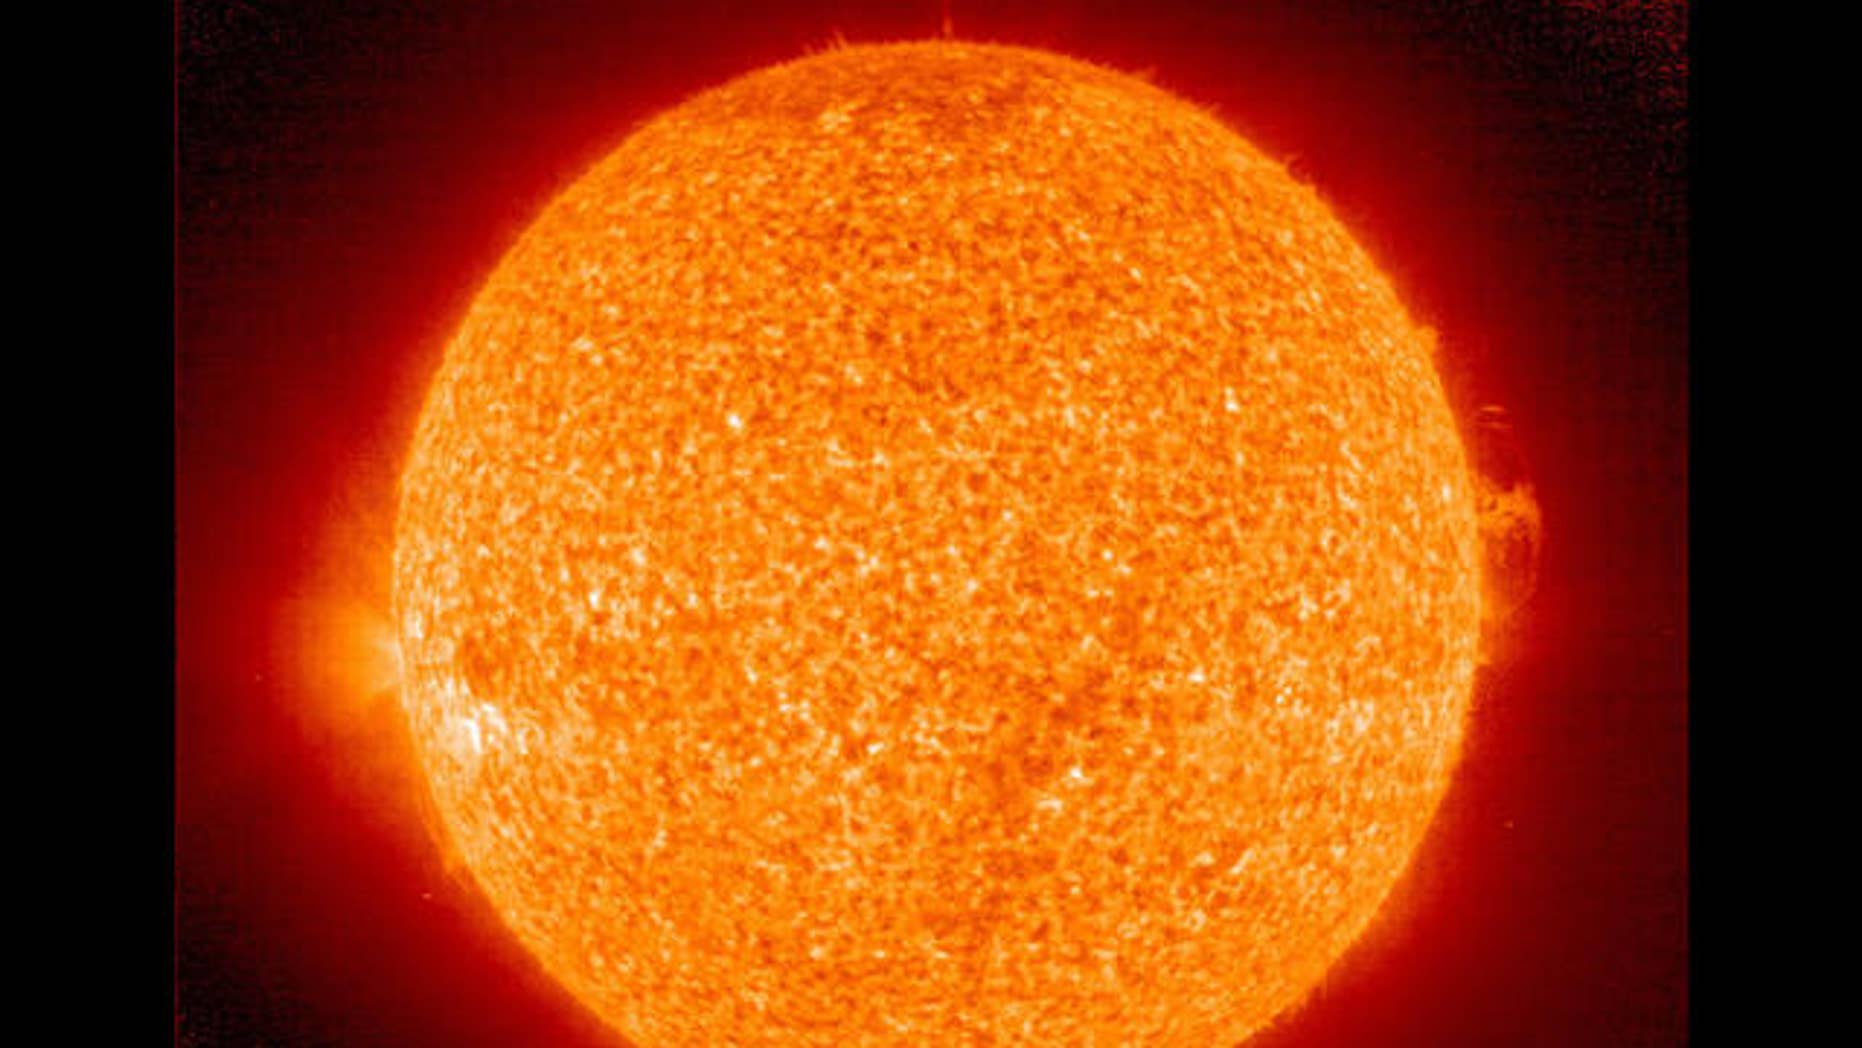 This image provided by NASA shows the latest image of the Sun taken July 24, 2007. NASA scientists are keeping a close eye on the sun. It is almost spotless, a sign that the Sun may have reached solar minimum. Scientists are now watching for the first spot of the new solar cycle to appear. The 11 year long solar cycle is marked by two extremes, solar minimum and solar maximum. Solar minimum is the period of least solar activity in the solar cycle of the sun. During this time sunspot and solar flare activity diminishes, and often does not occur for days at a time. (AP Photo/NASA)